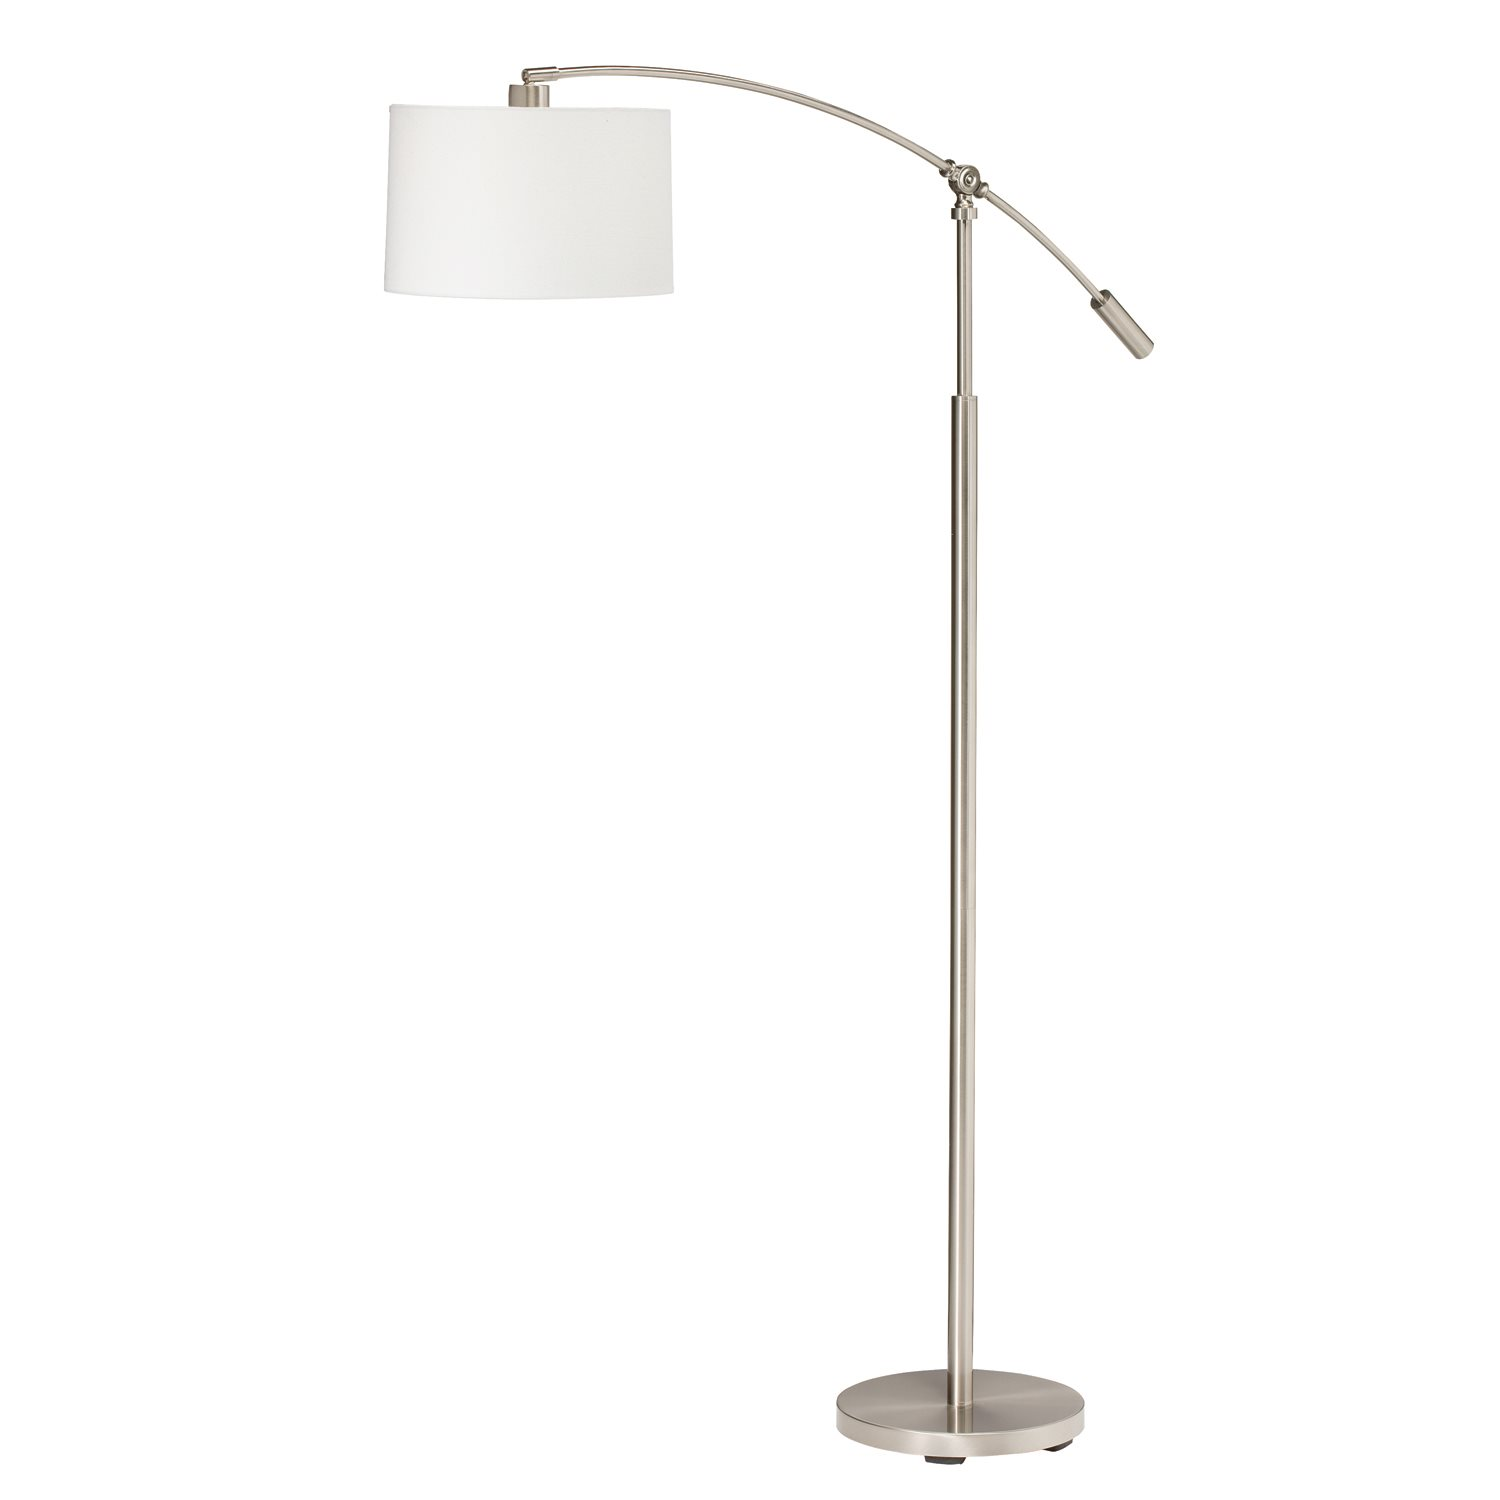 Kichler Lighting 74256 Cantilever Contemporary Floor Lamp